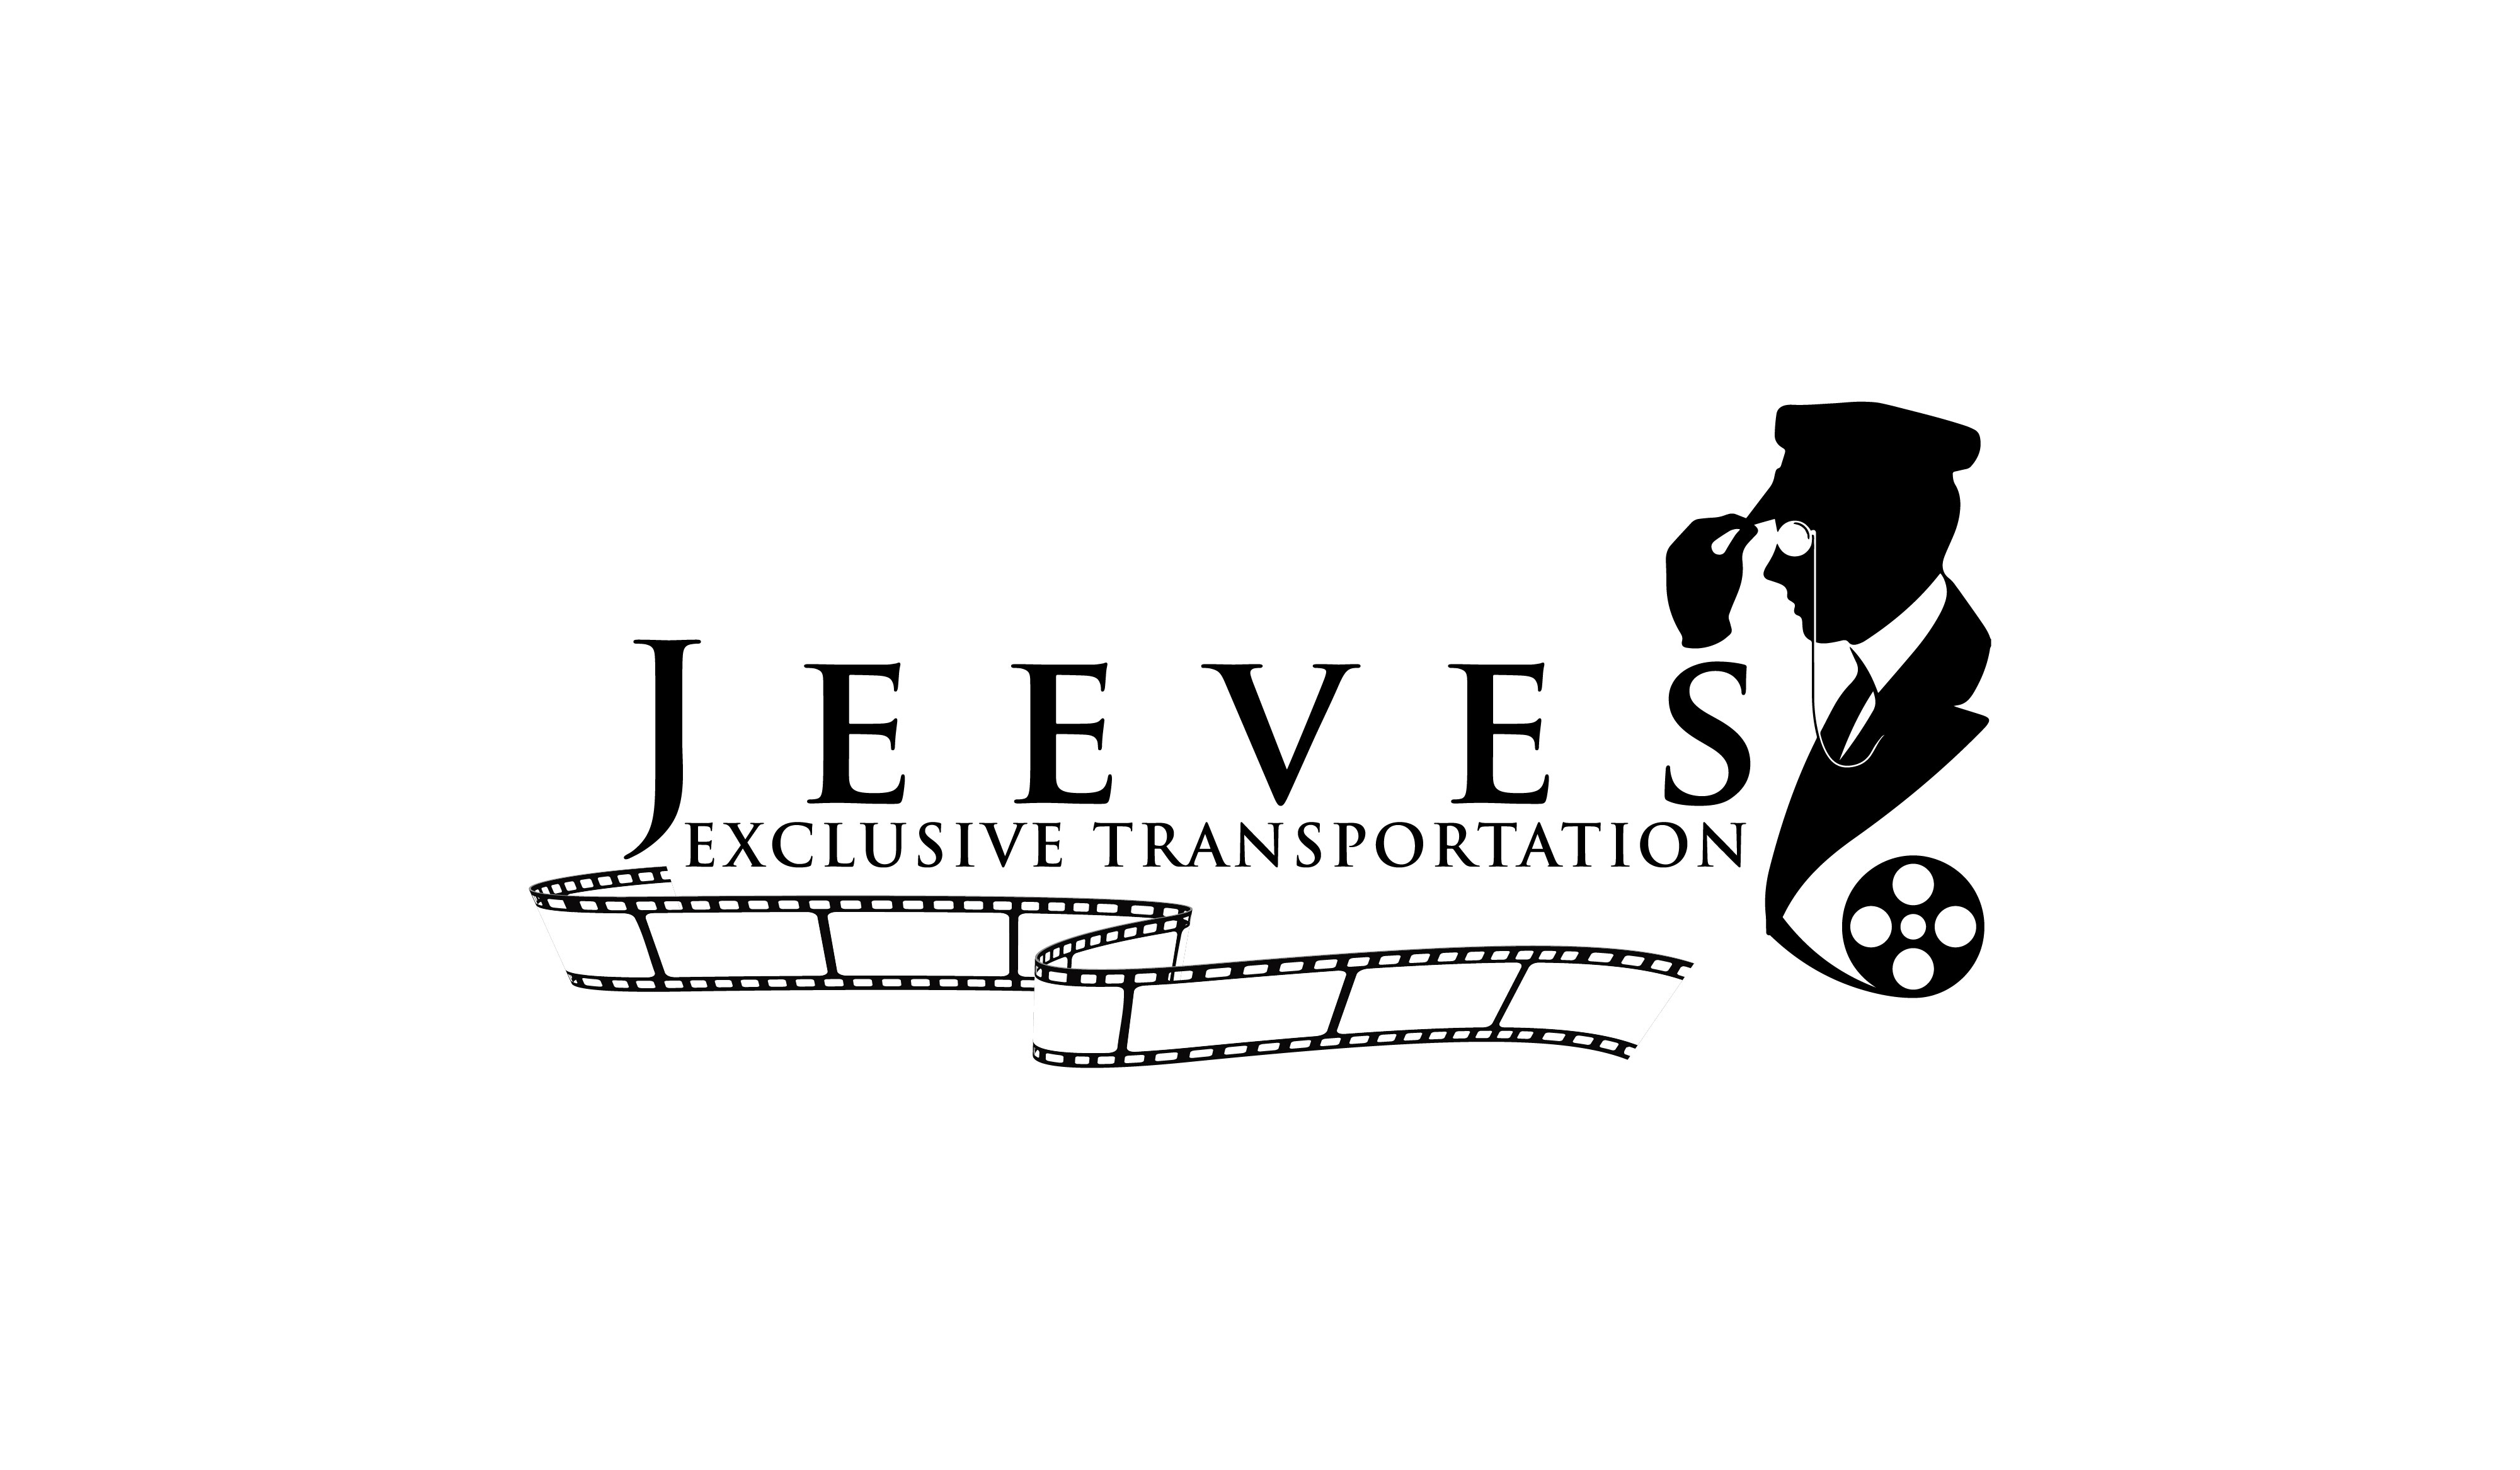 Jeeves Exclusive Transportation Becomes The First Unionized Executive Transportation Company in LA